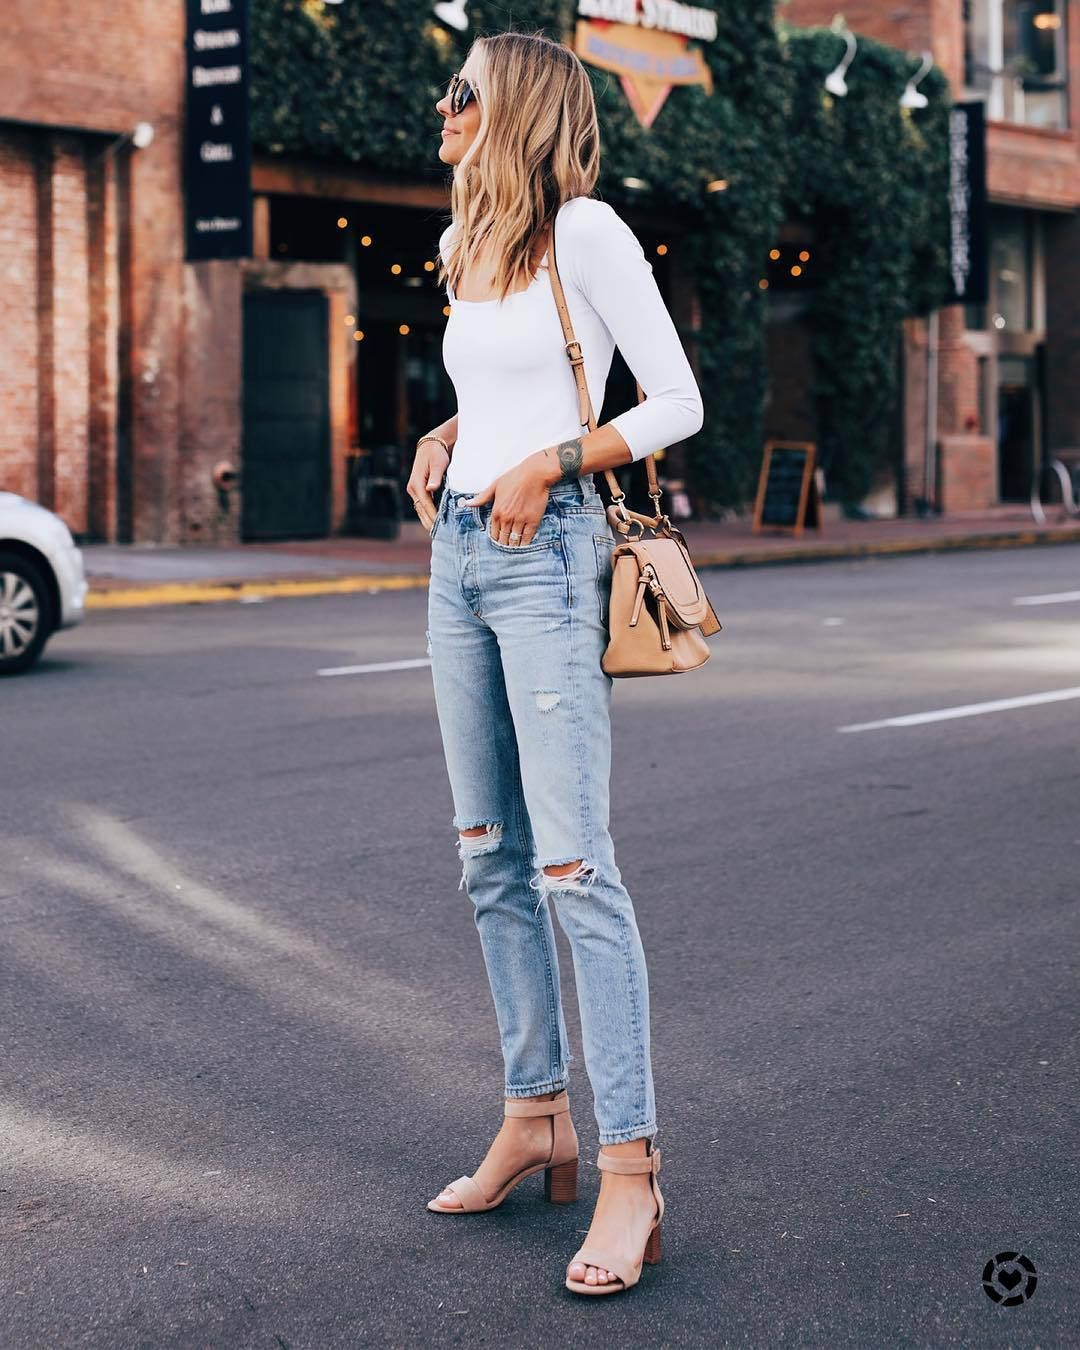 Jeans, $168 at freepeople.com – Wheretoget